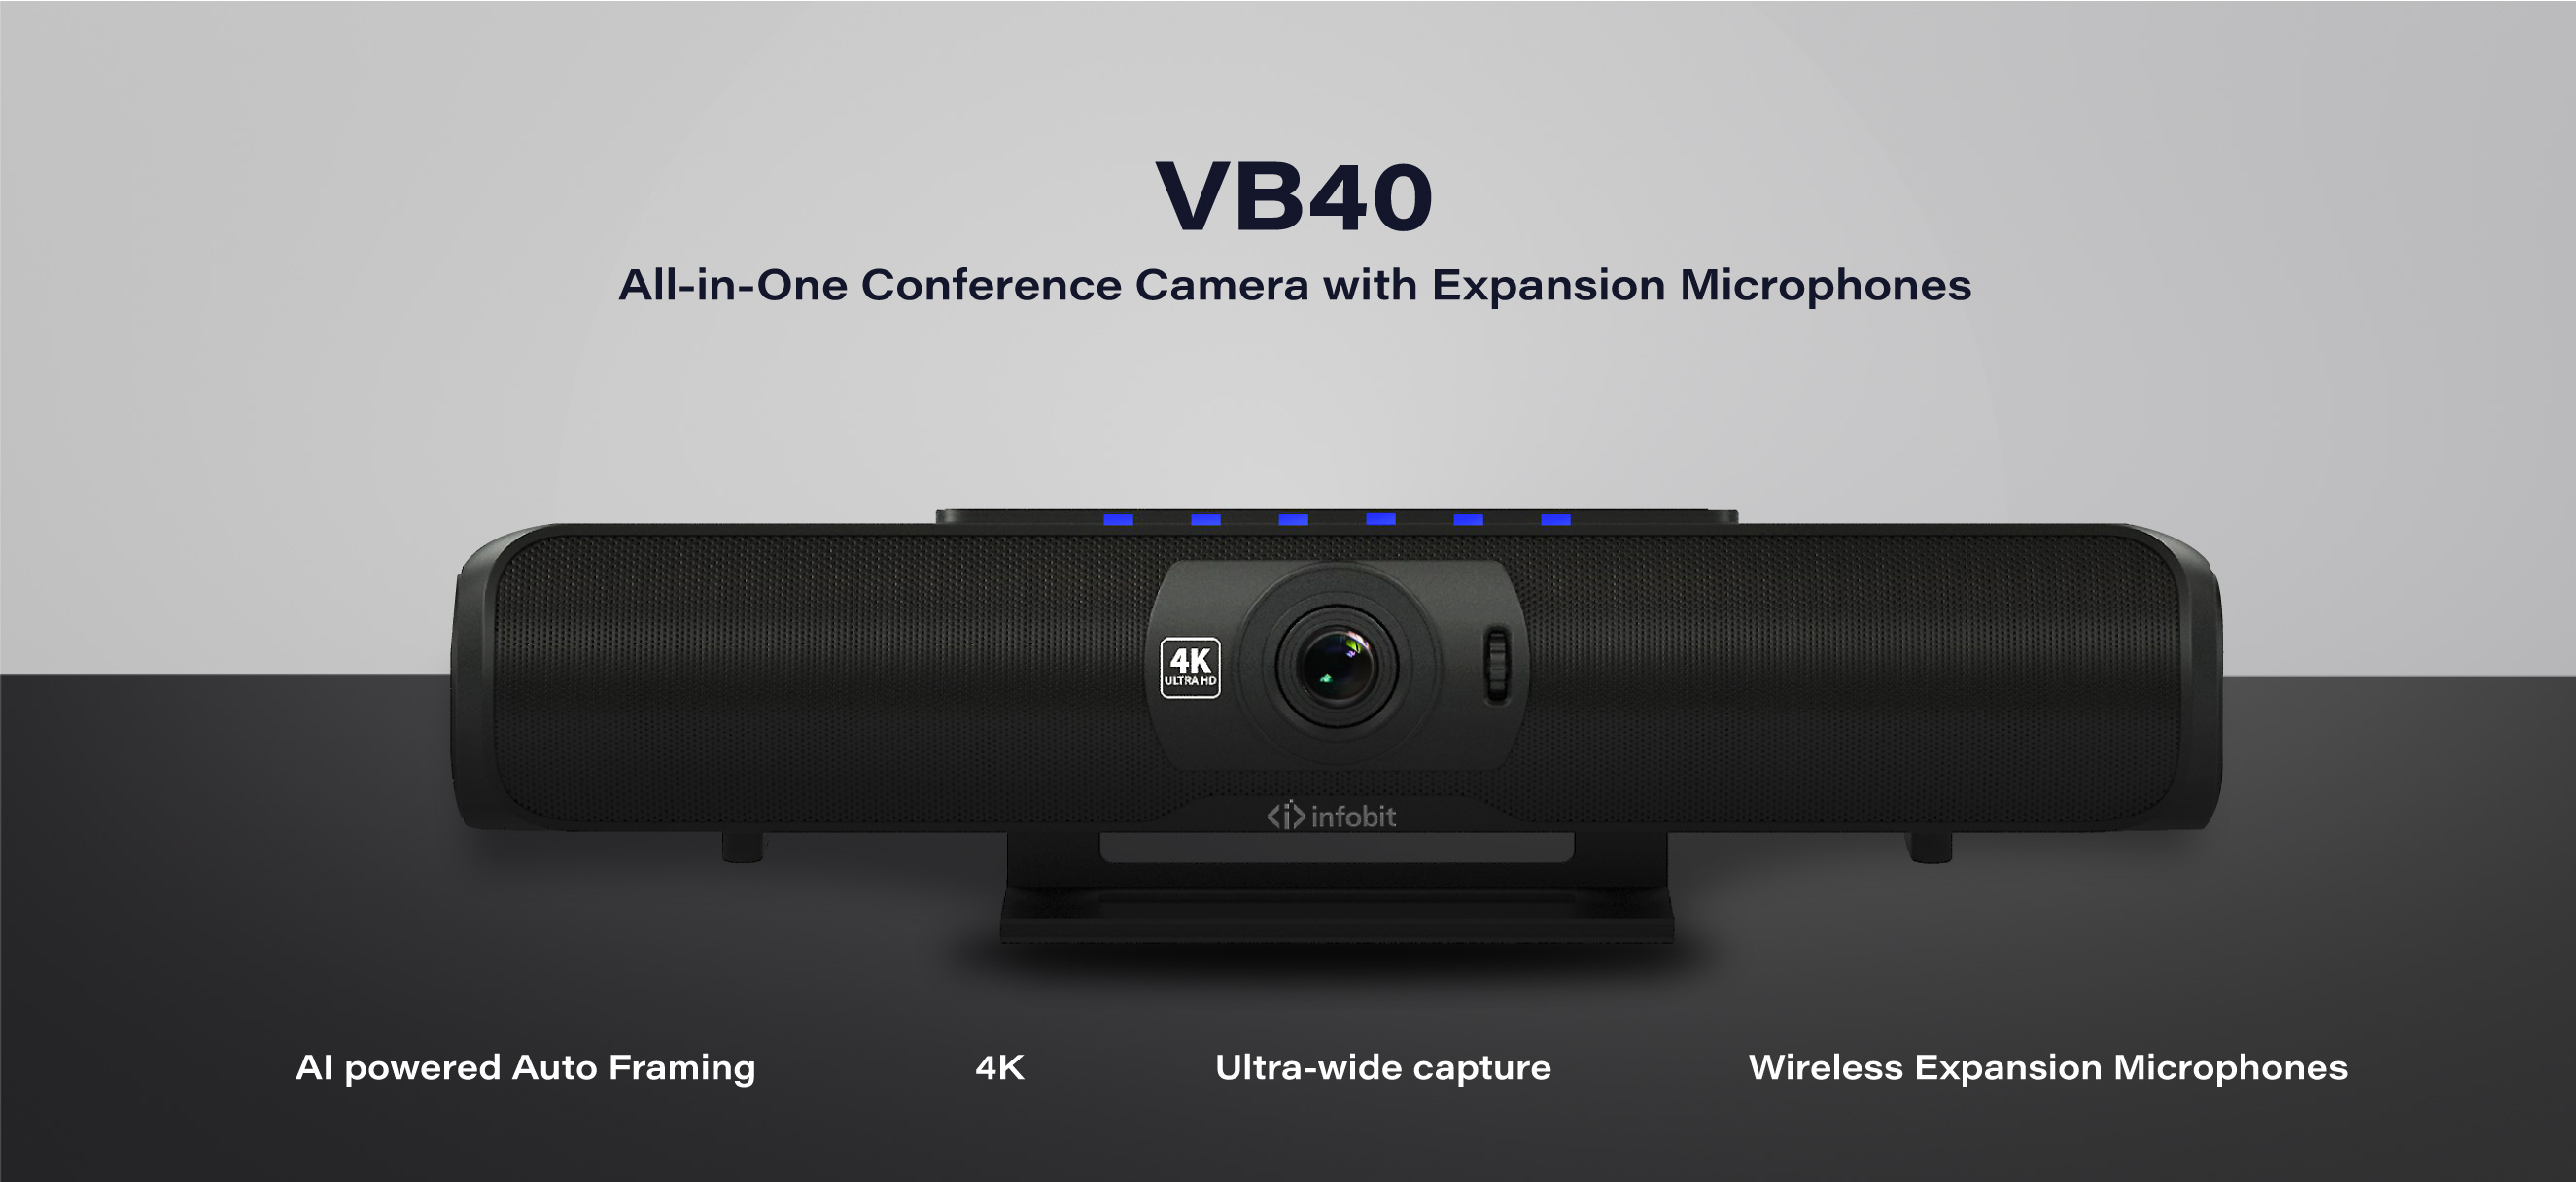 iCam VB40 All-in-One Conference Camera